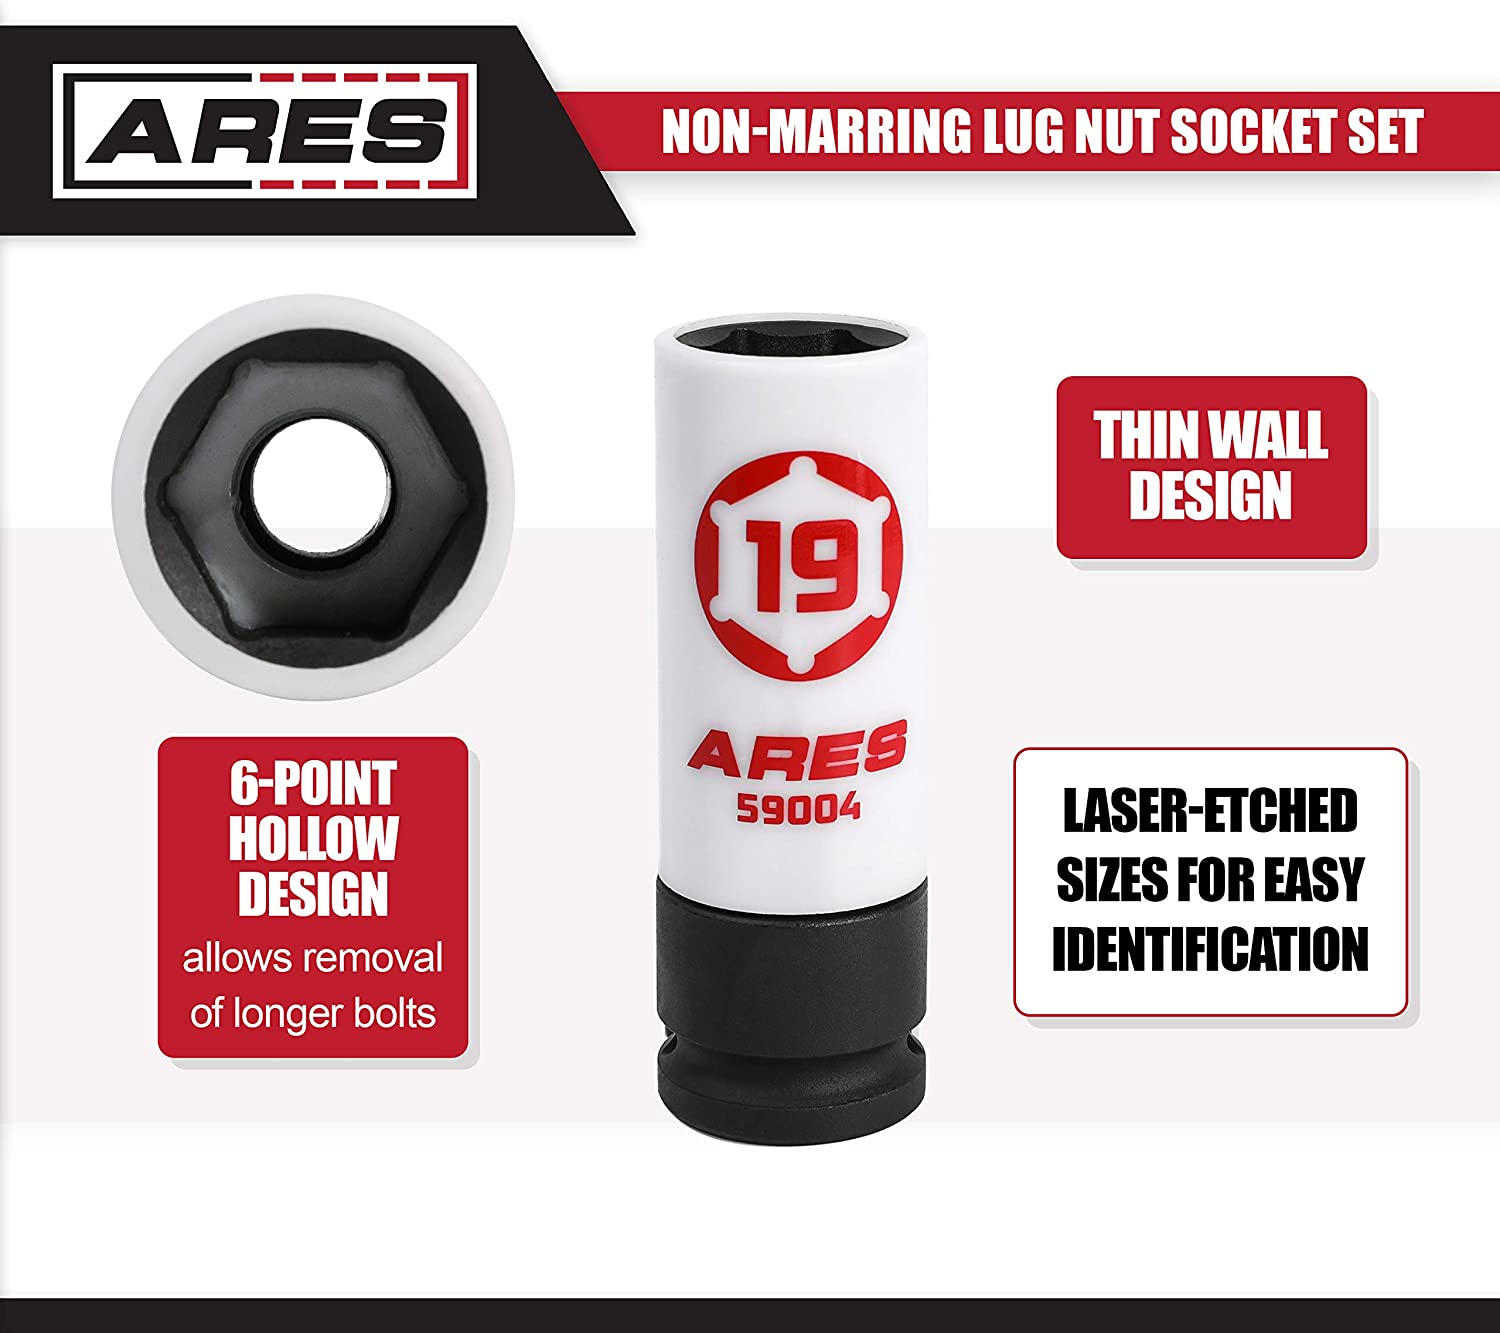 ARES 59000-5-Piece 1//2-Inch Drive Non-Marring Lug Nut Socket Set Protective Sleeves and Inserts Prevent Damage to Wheels and Lugs Storage Rail Included